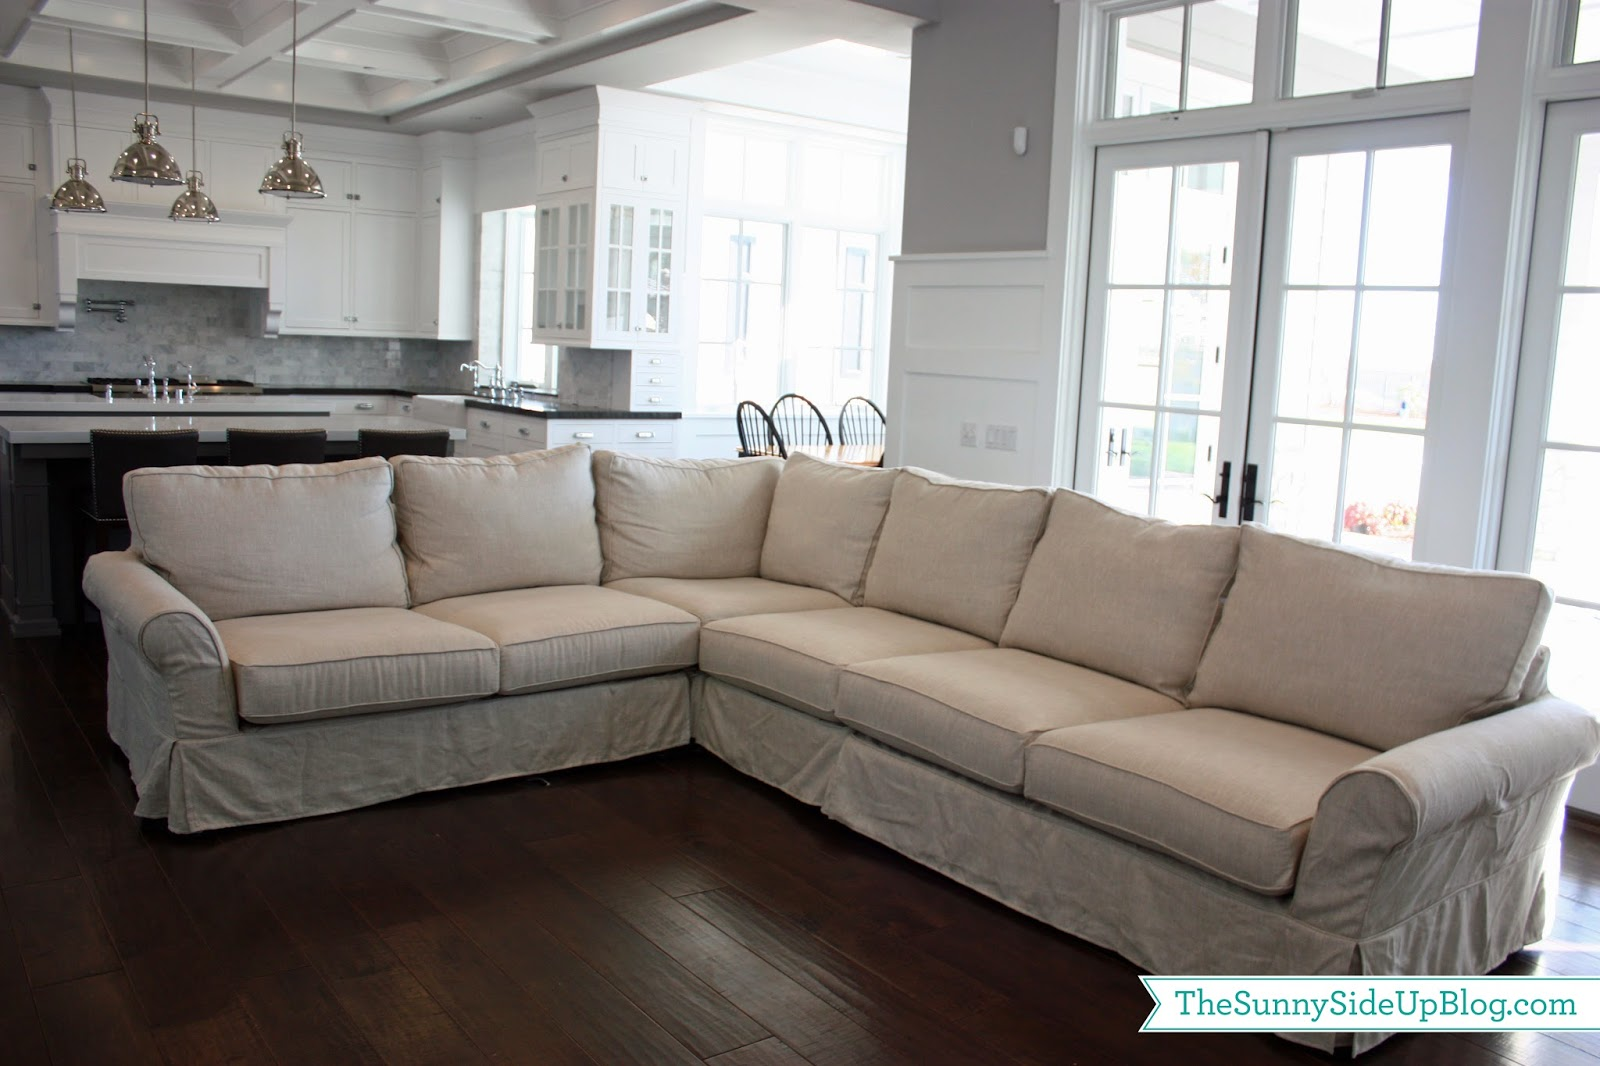 Family room decor update the sunny side up blog - Furnitur photos ...